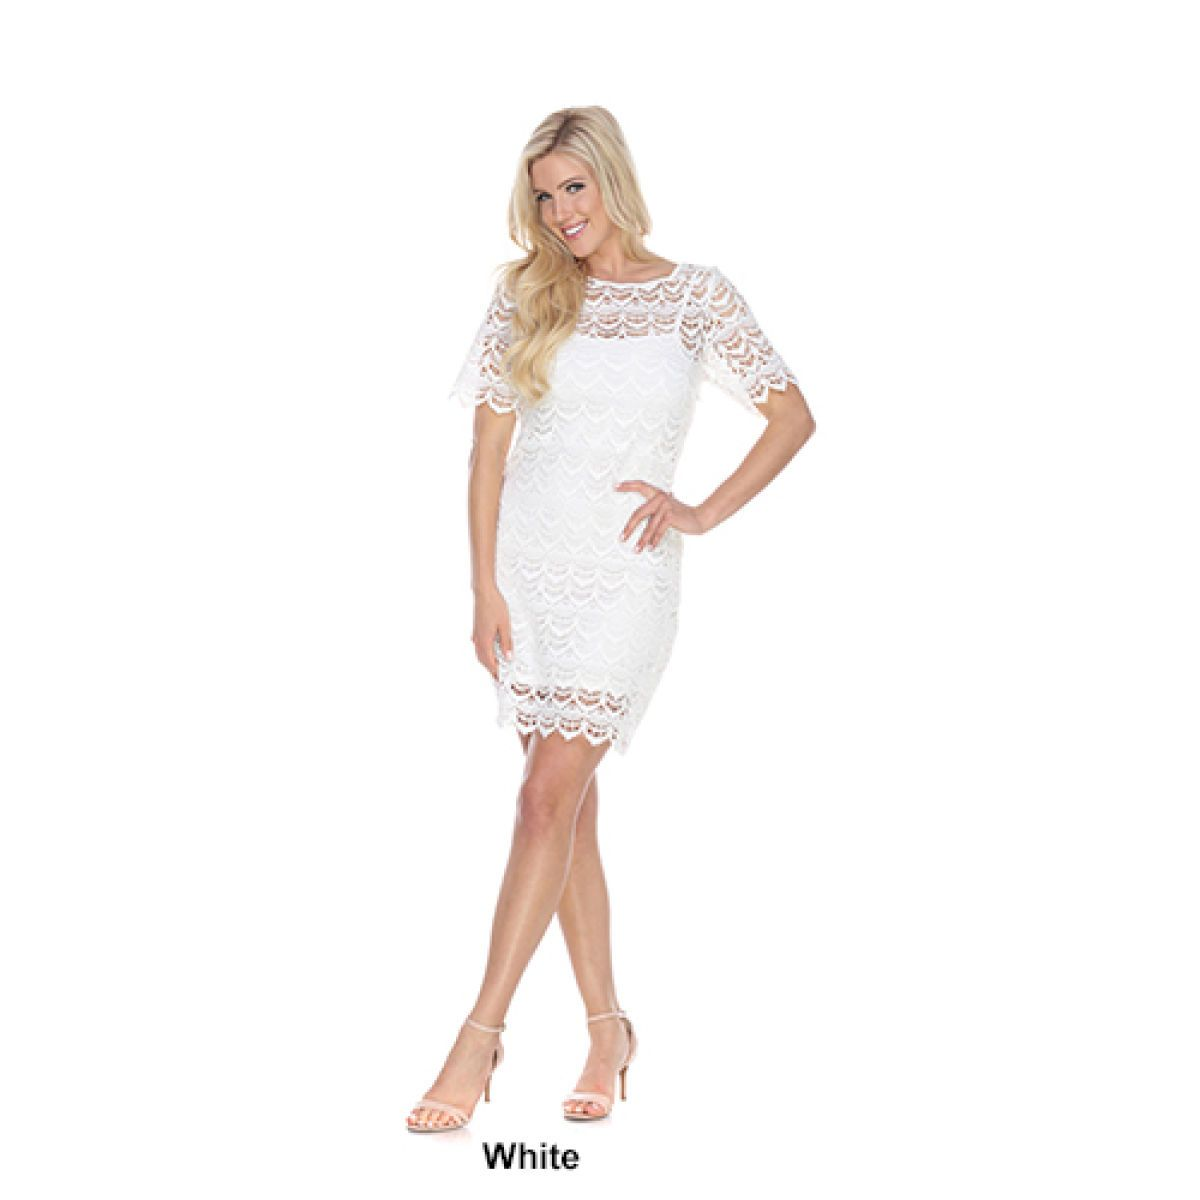 Boscov's White Lace Short Dress